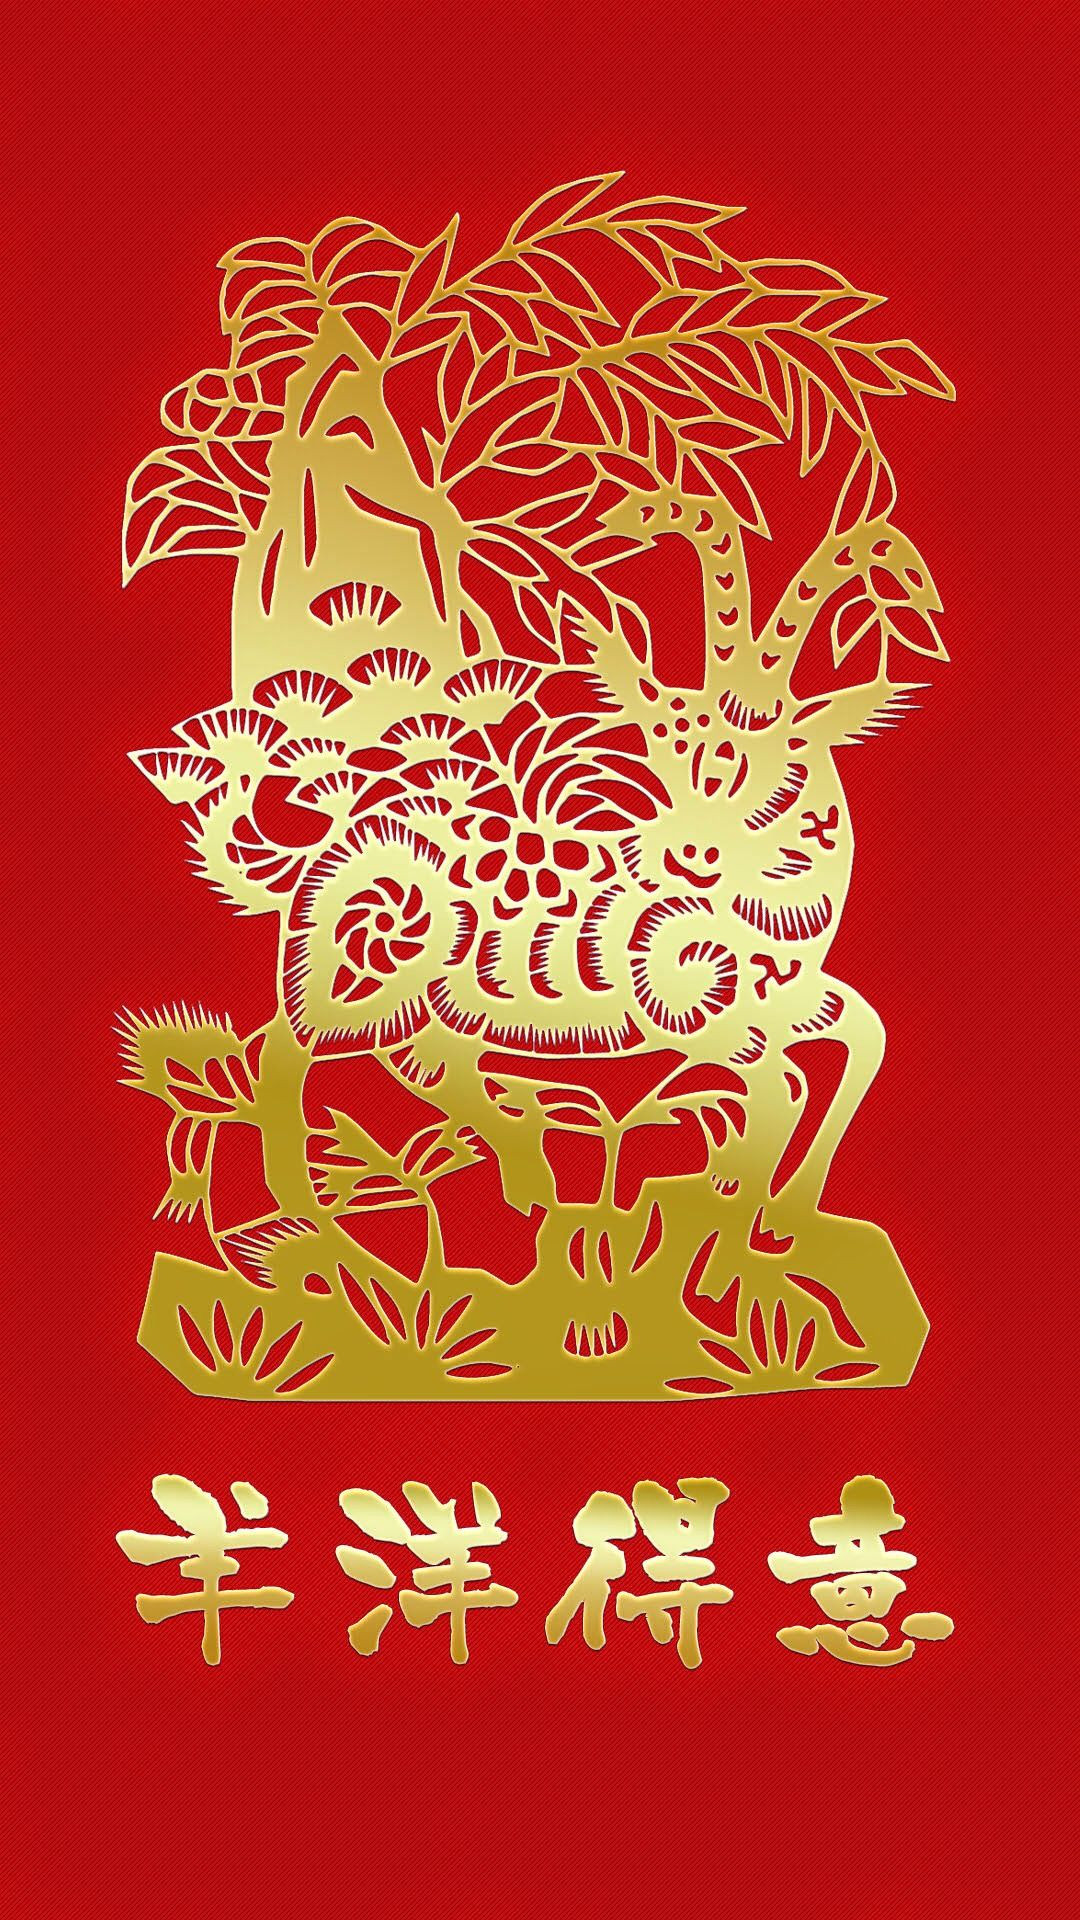 the year of goat/sheep. check out these happy lunar chinese new year